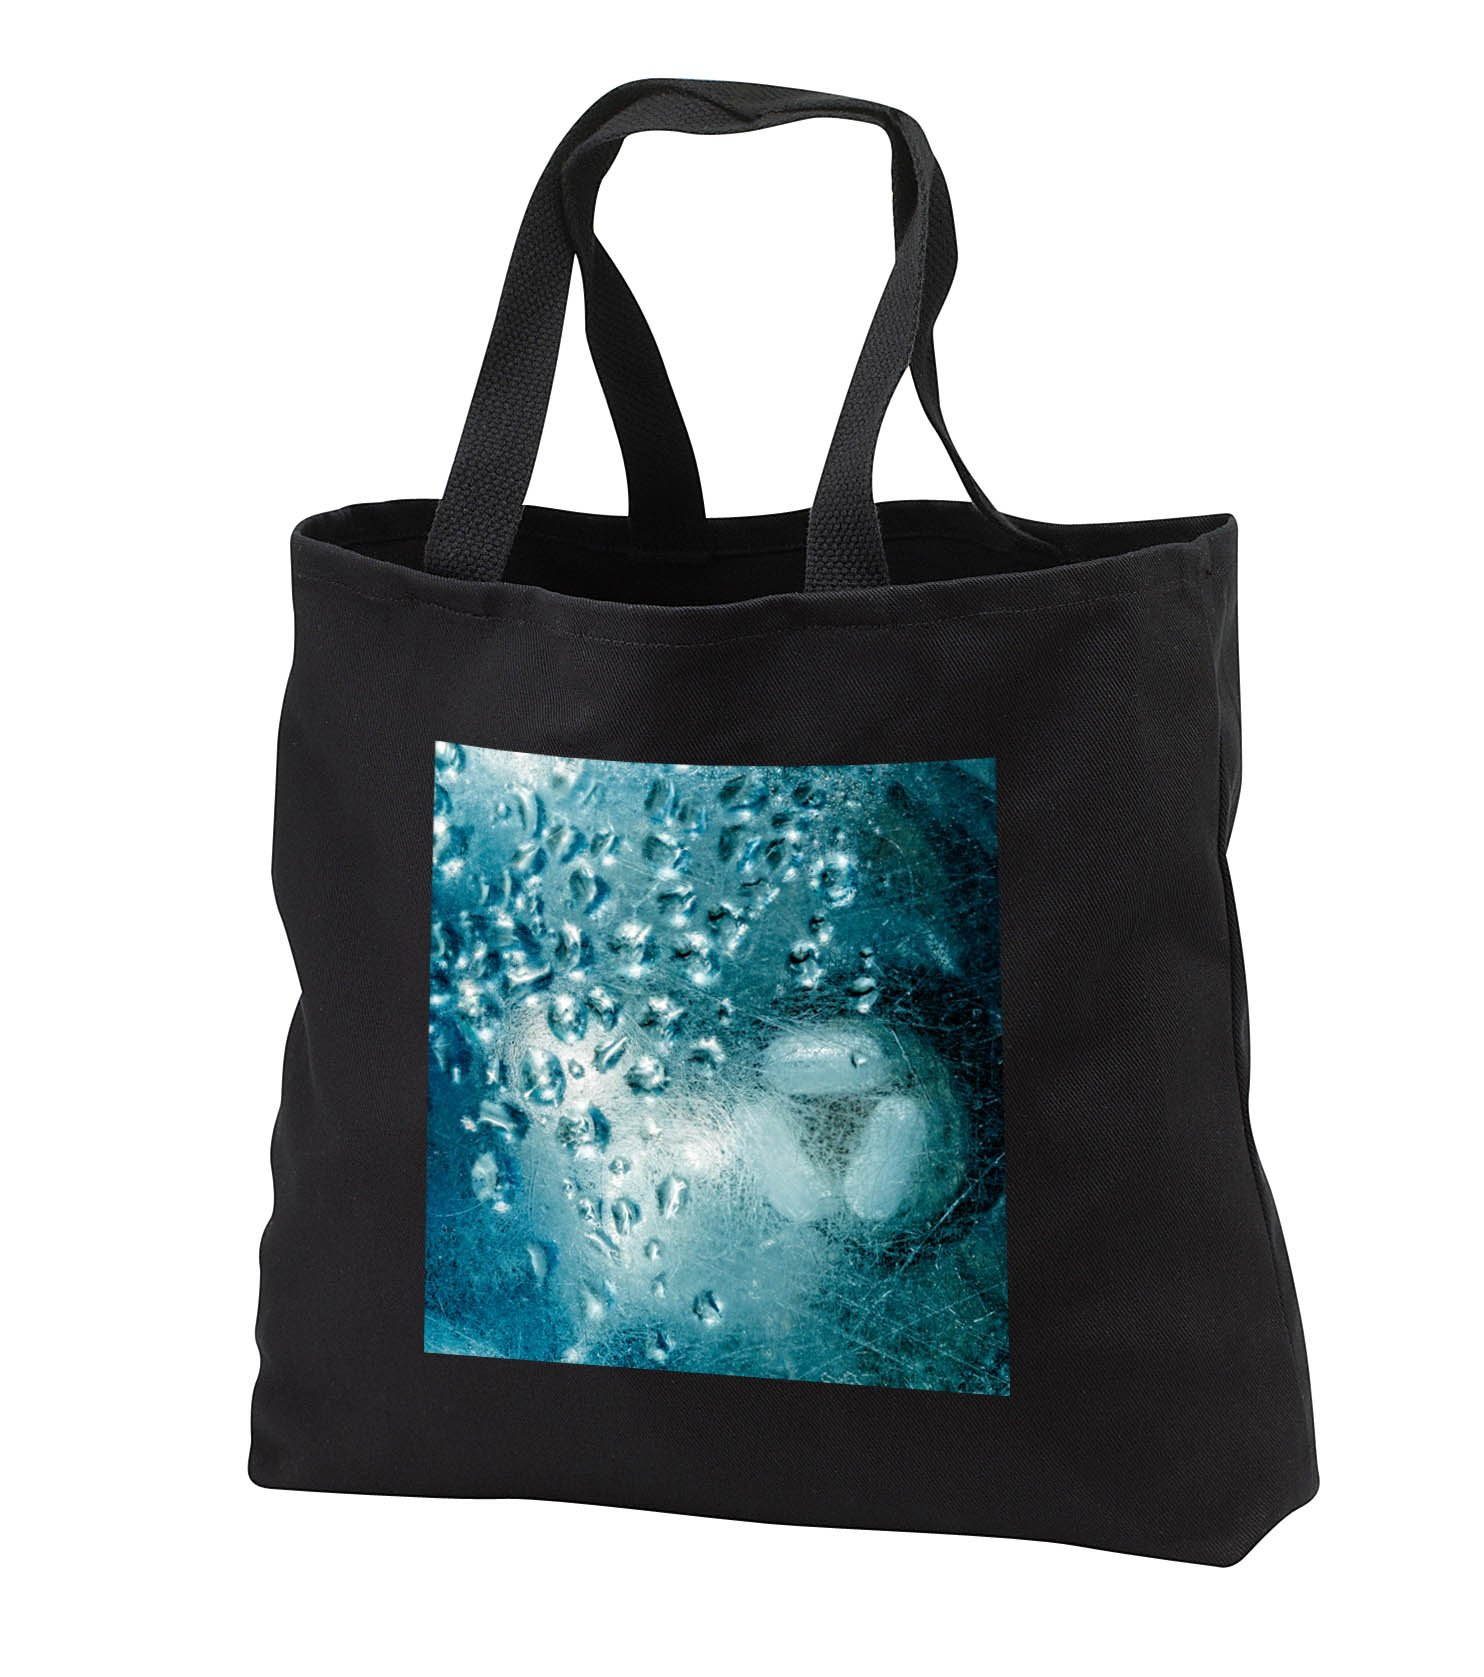 Alexis Photography - Texture Glass - Image of blue green grunge glass, condensate, industrial texture - Tote Bags - Black Tote Bag JUMBO 20w x 15h x 5d (tb_285767_3)